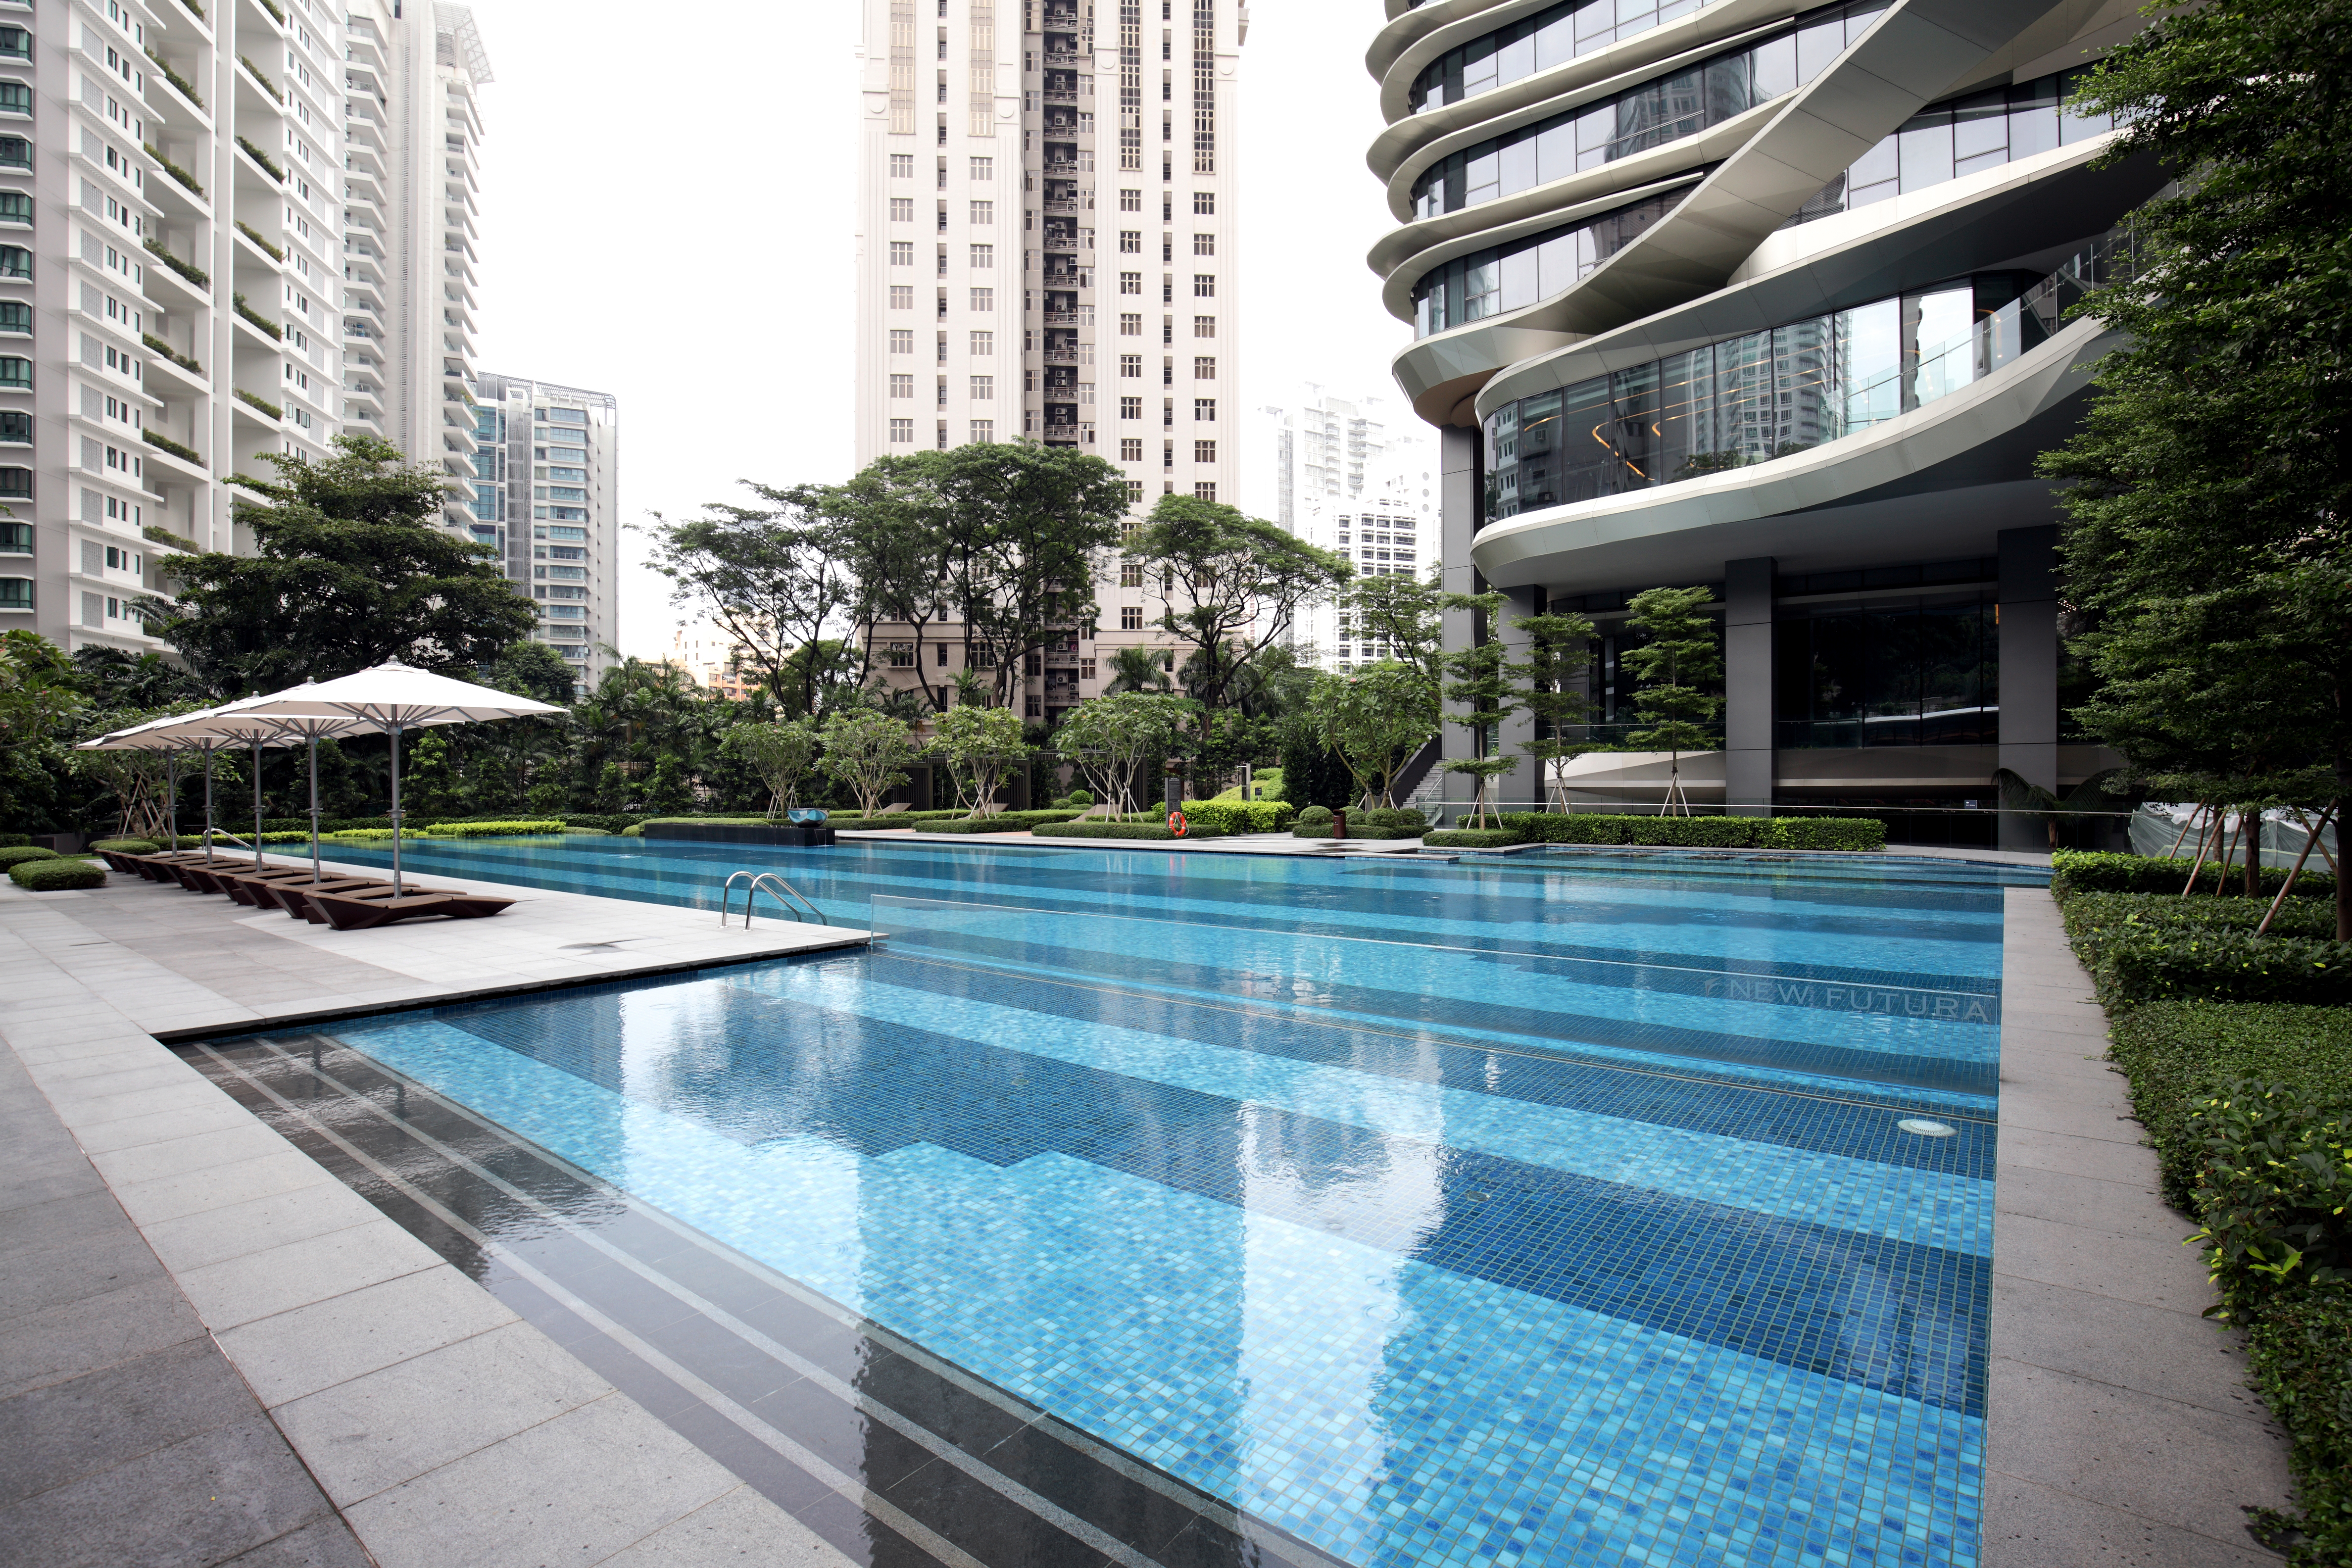 New Futura - The project contains twin 36-storey towers sitting on an 87,000 sq ft site - EDGEPROP SINGAPORE